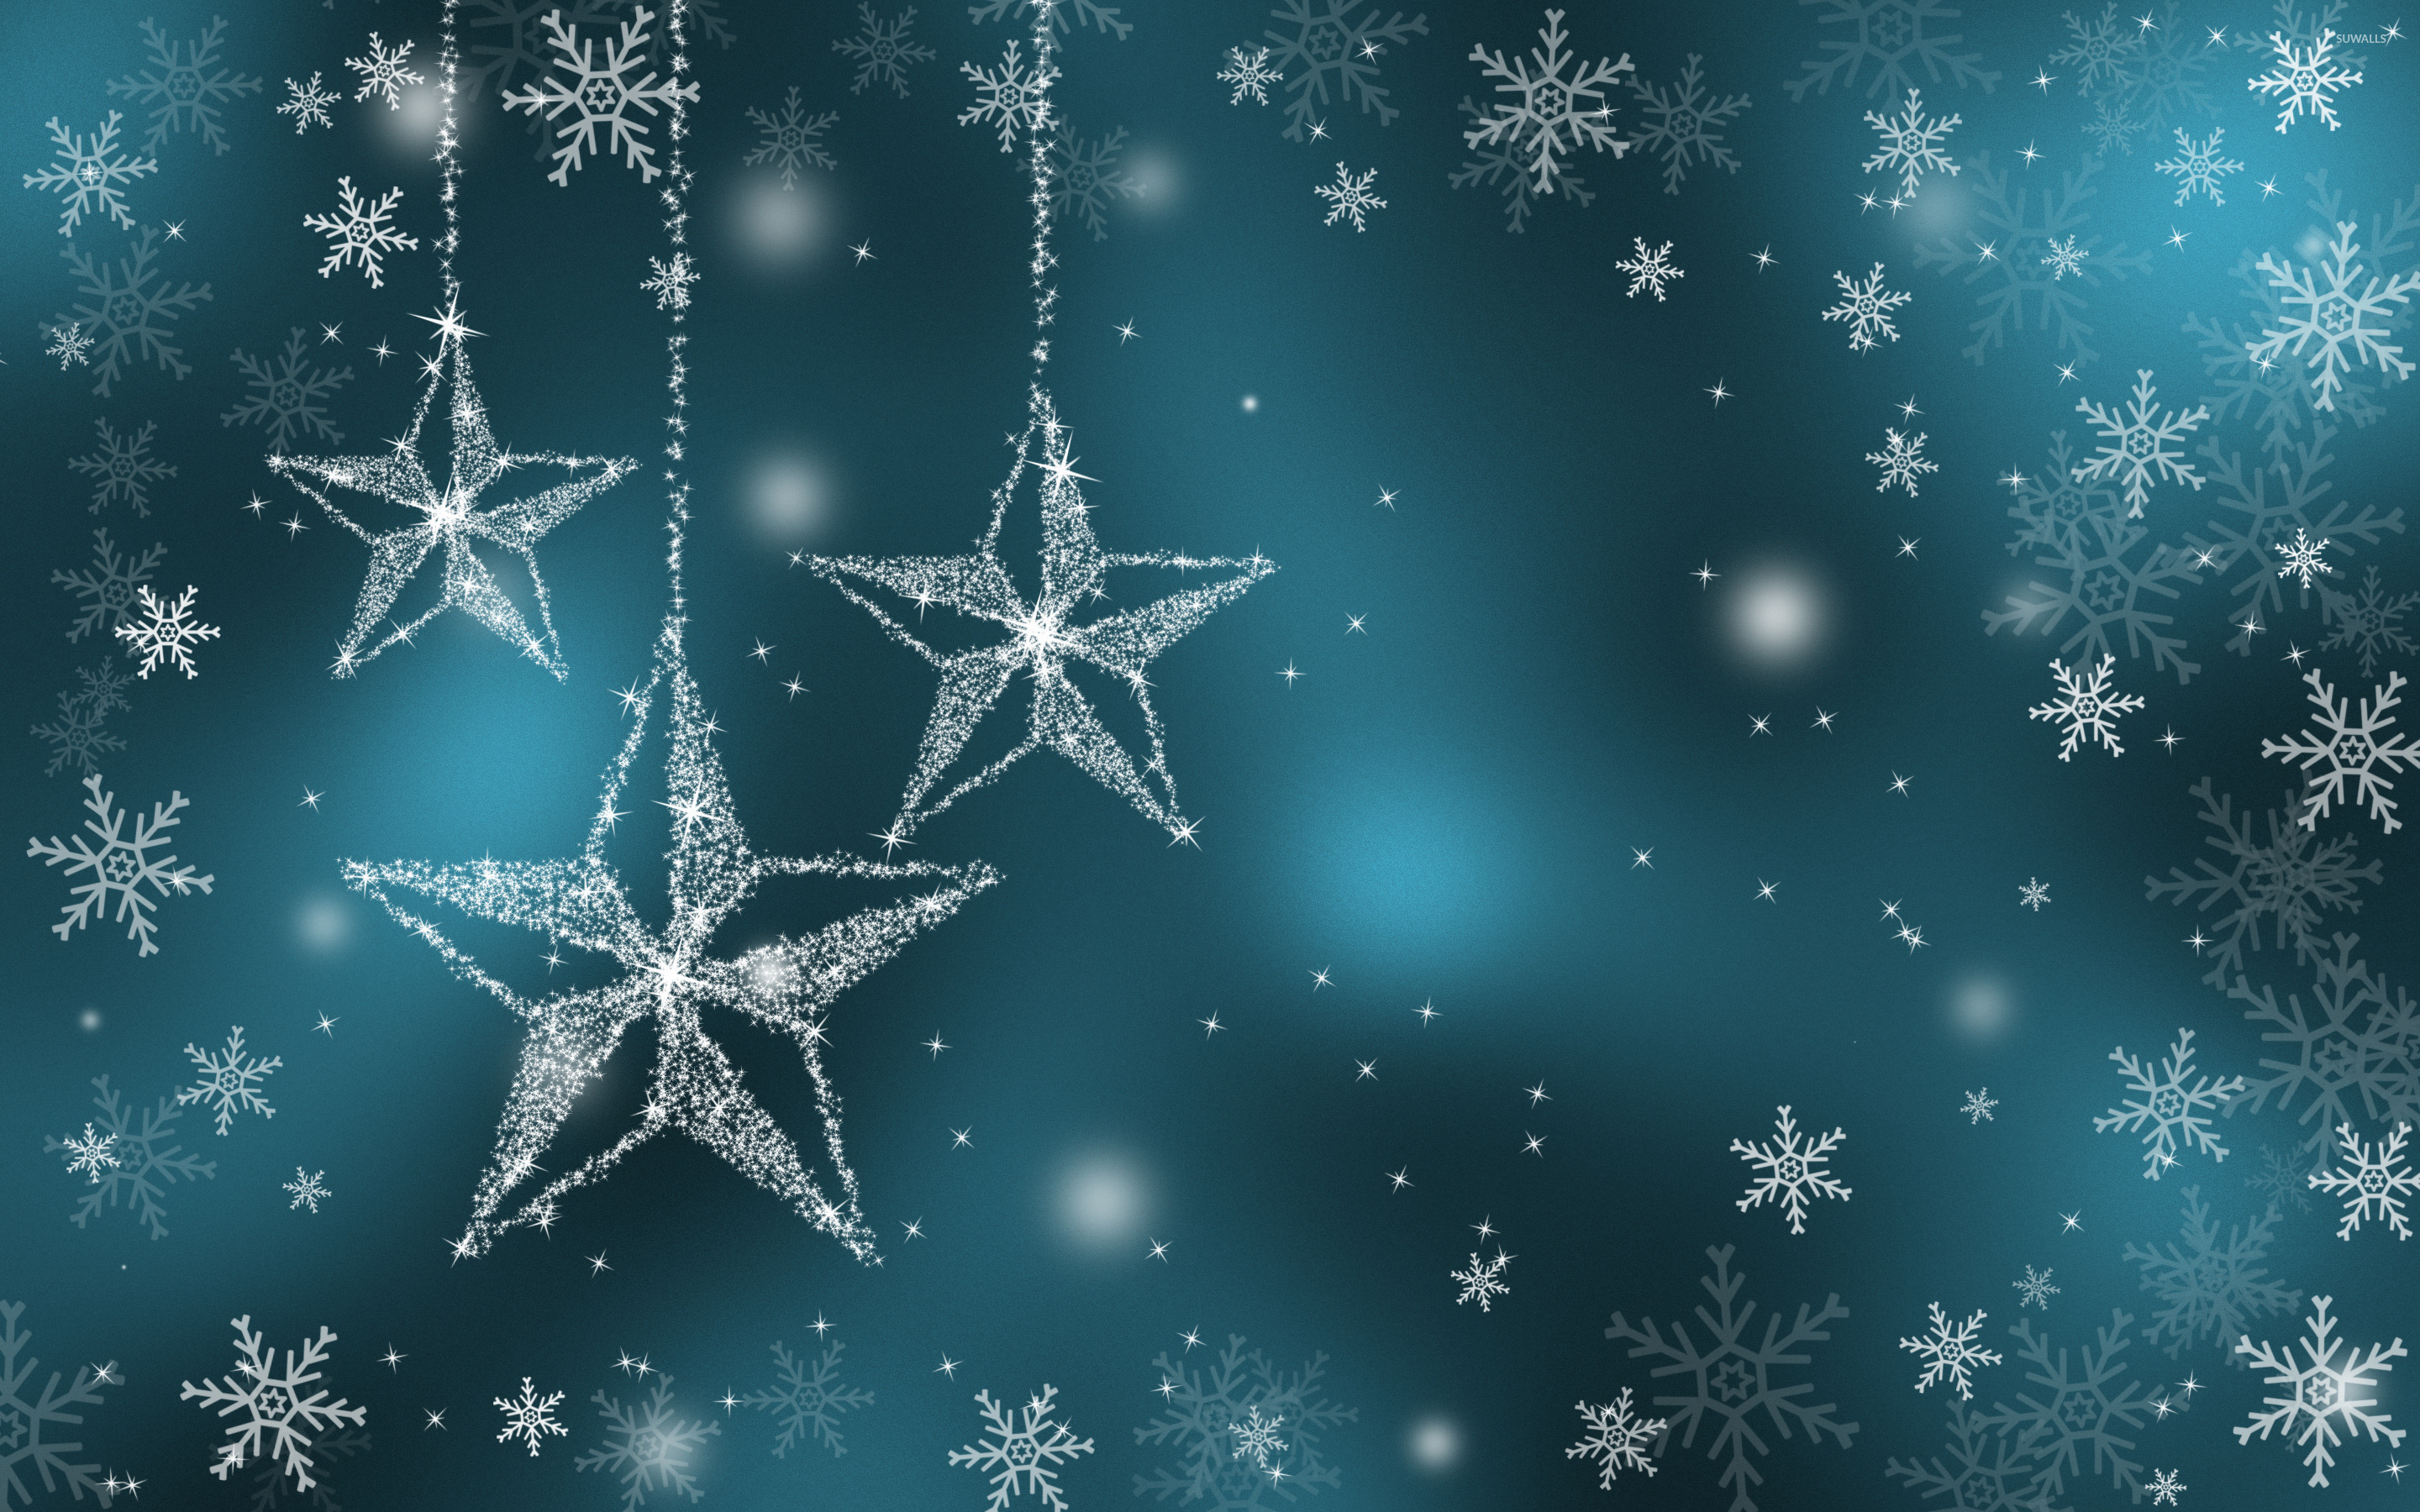 Sparkling stars wallpaper   Holiday wallpapers   25820 2880x1800